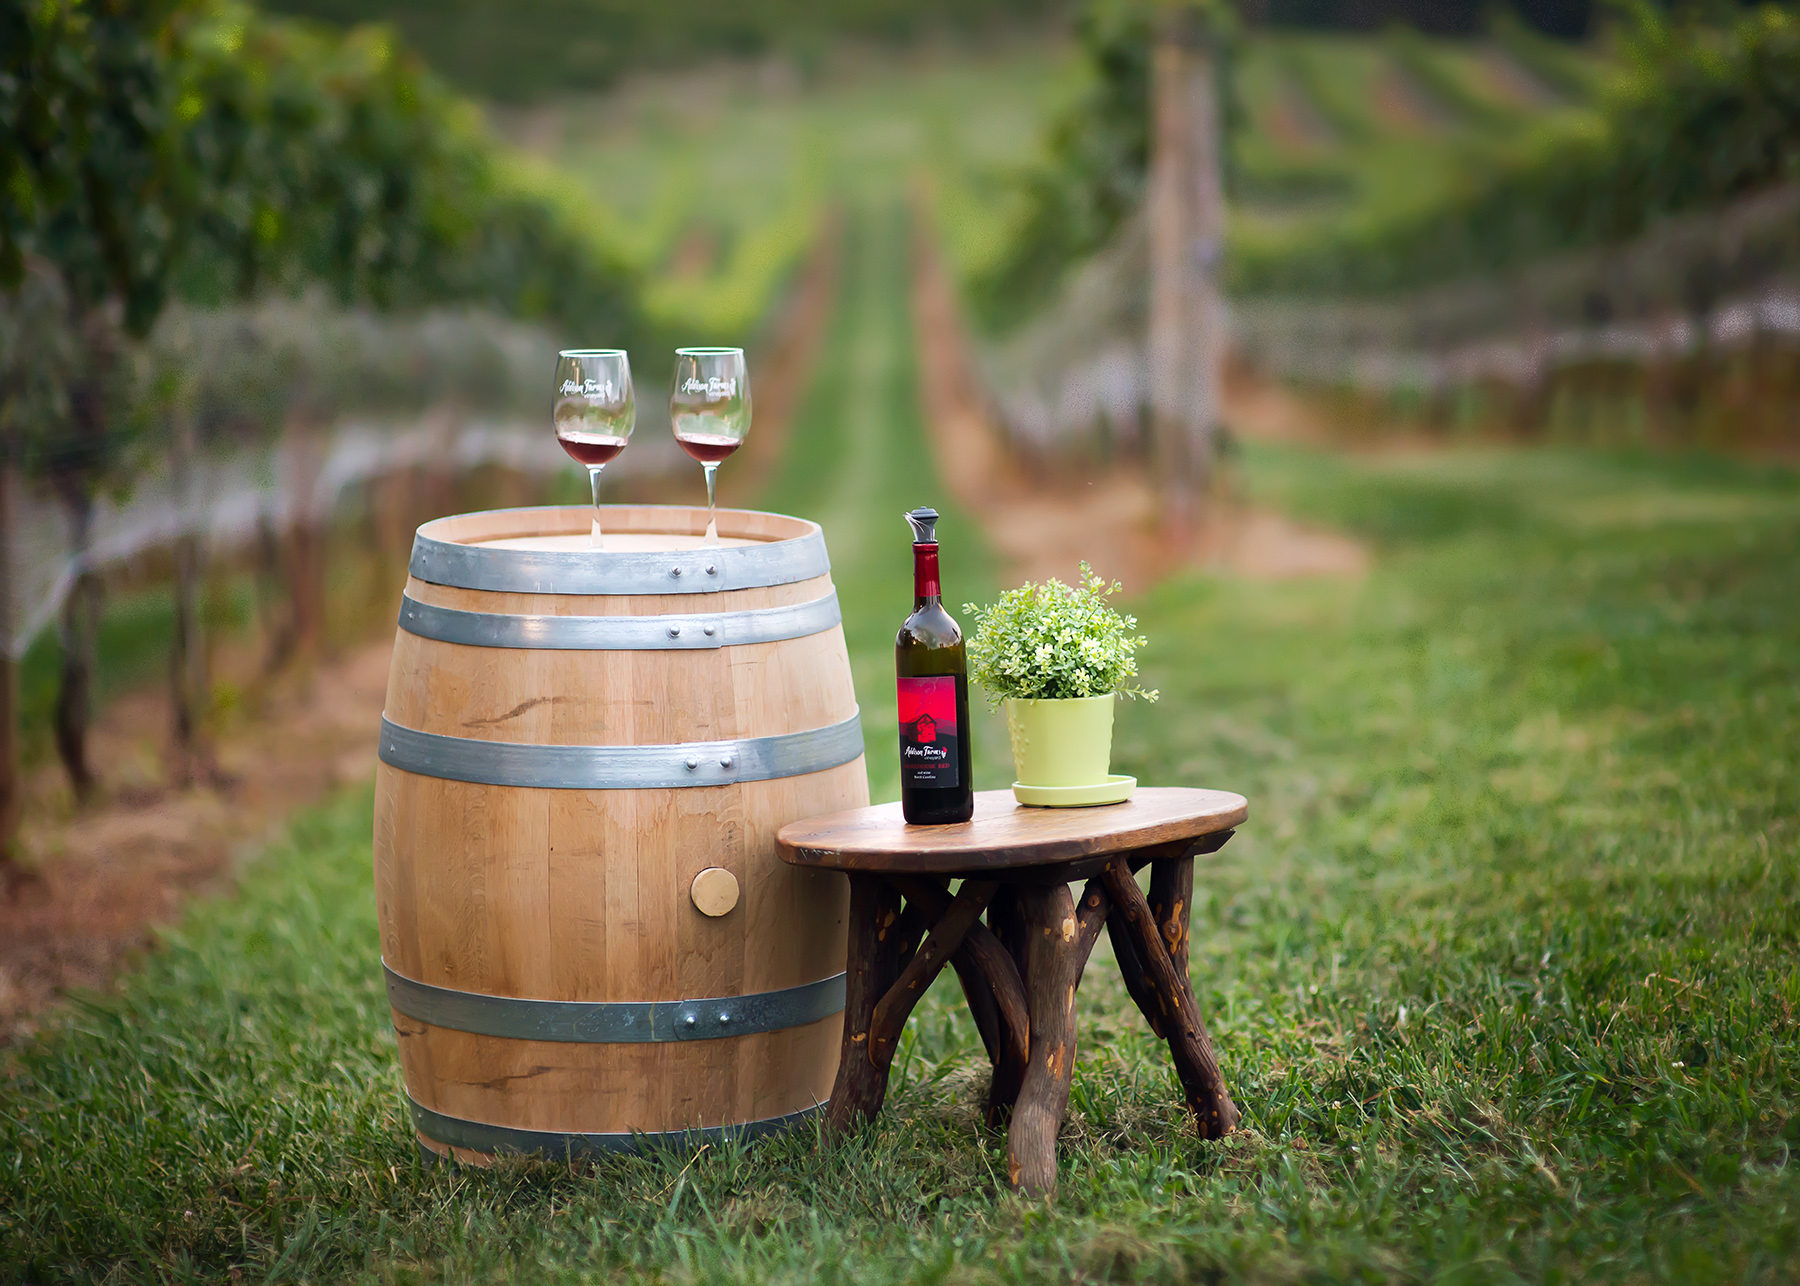 ABBA_AddisonFarmsVineyards_LandscapewithBarrel.jpg